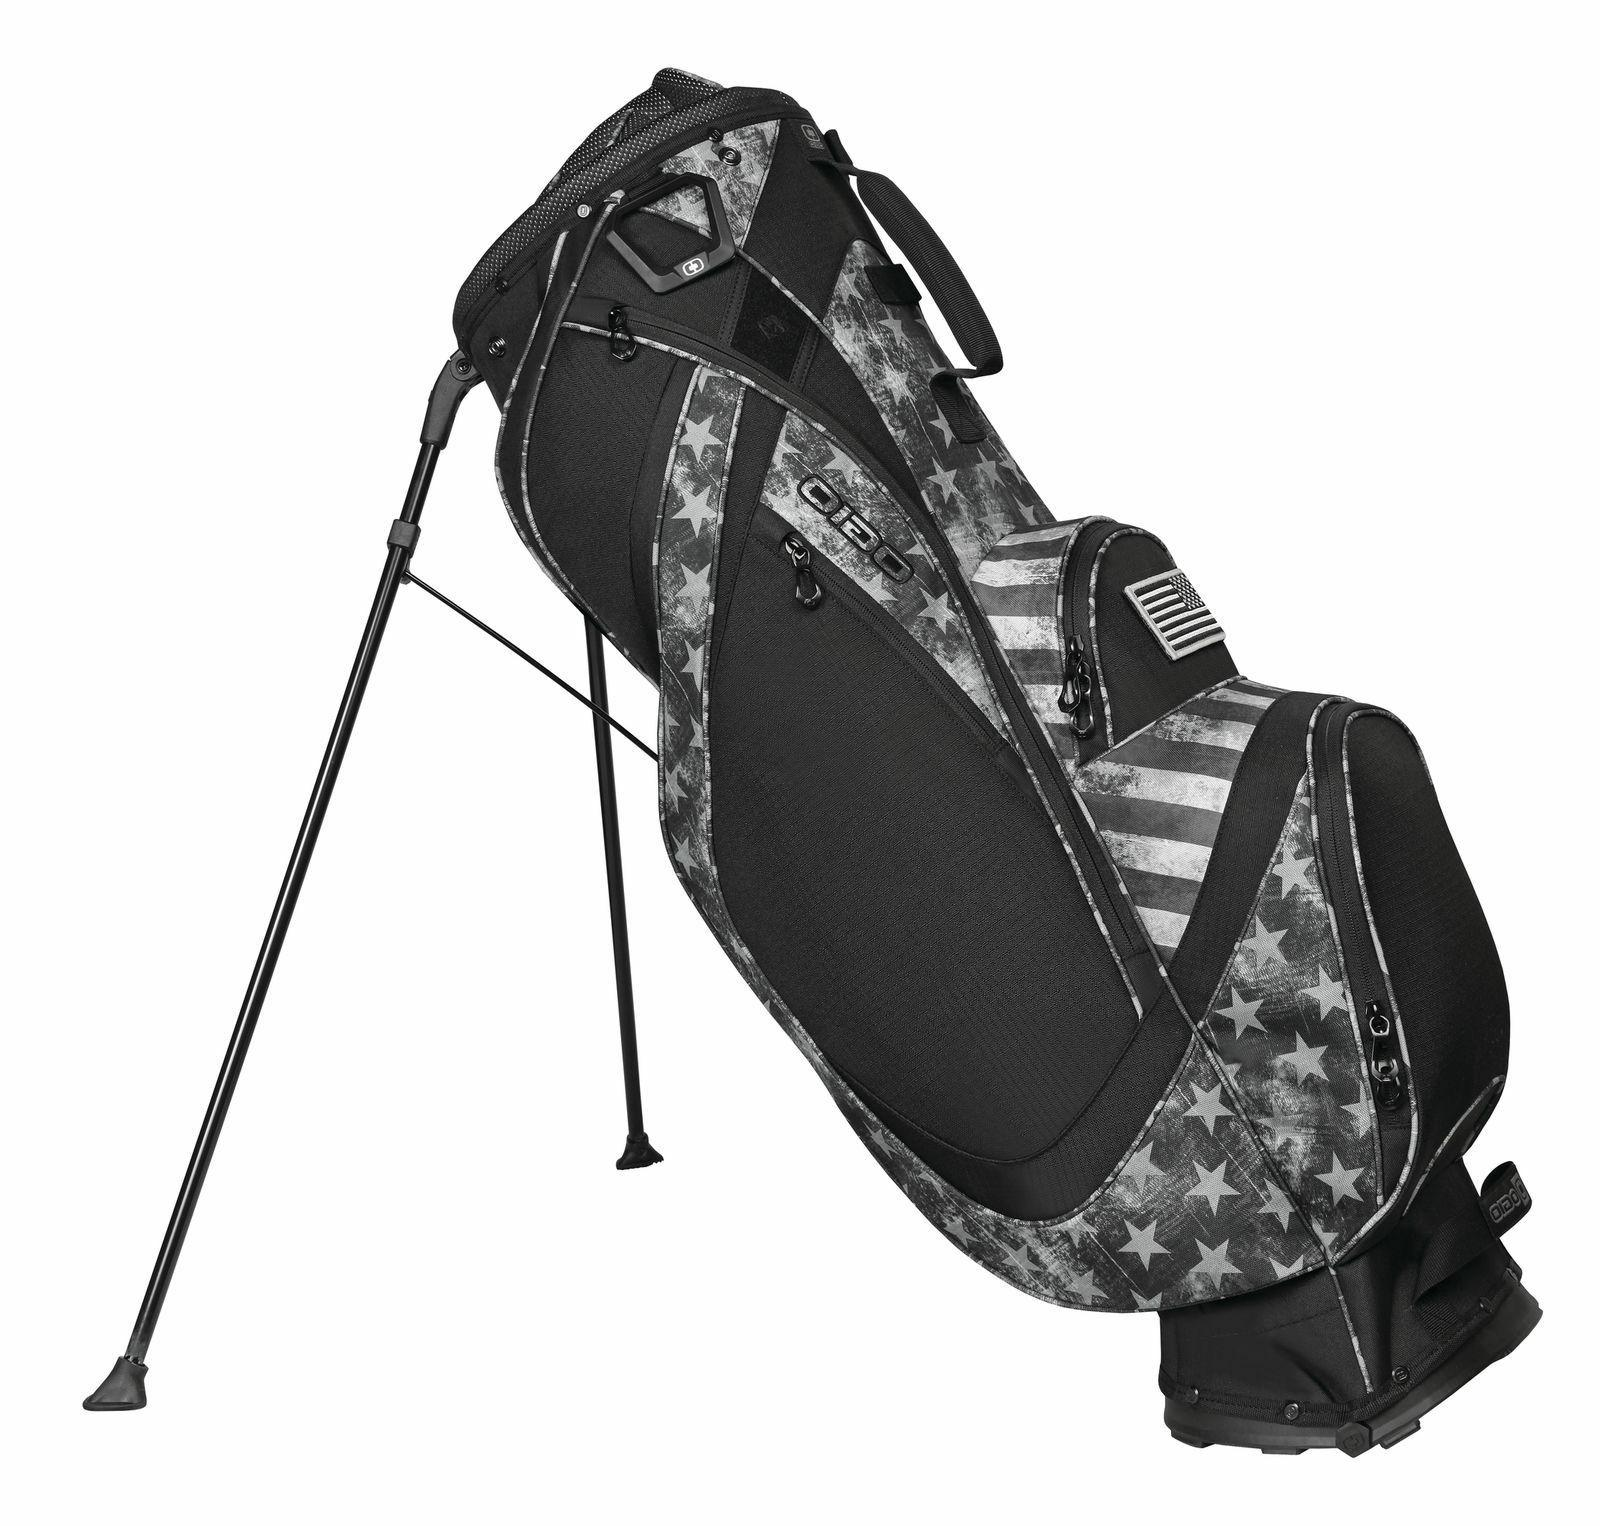 new black ops limited edition stand bag